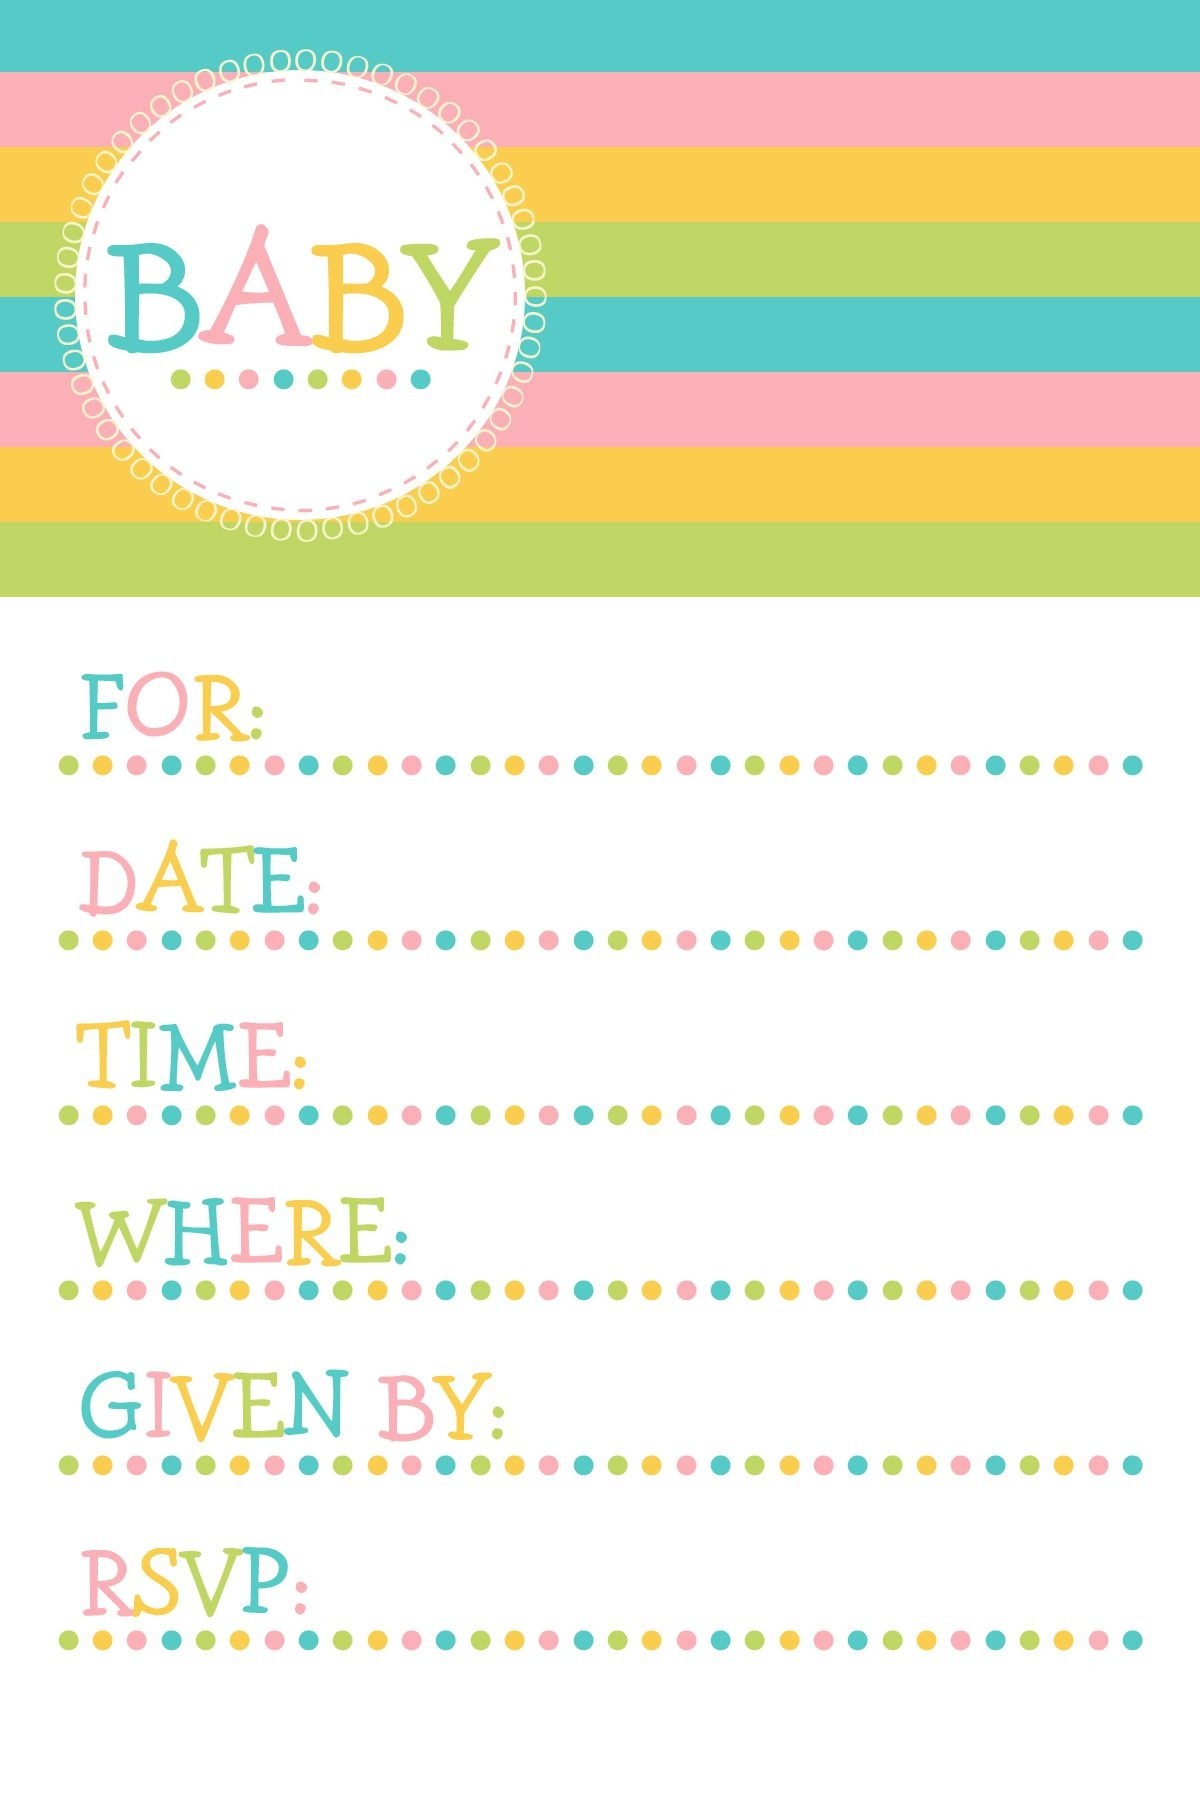 25 Adorable Free Printable Baby Shower Invitations - Baby Shower Templates Free Printable